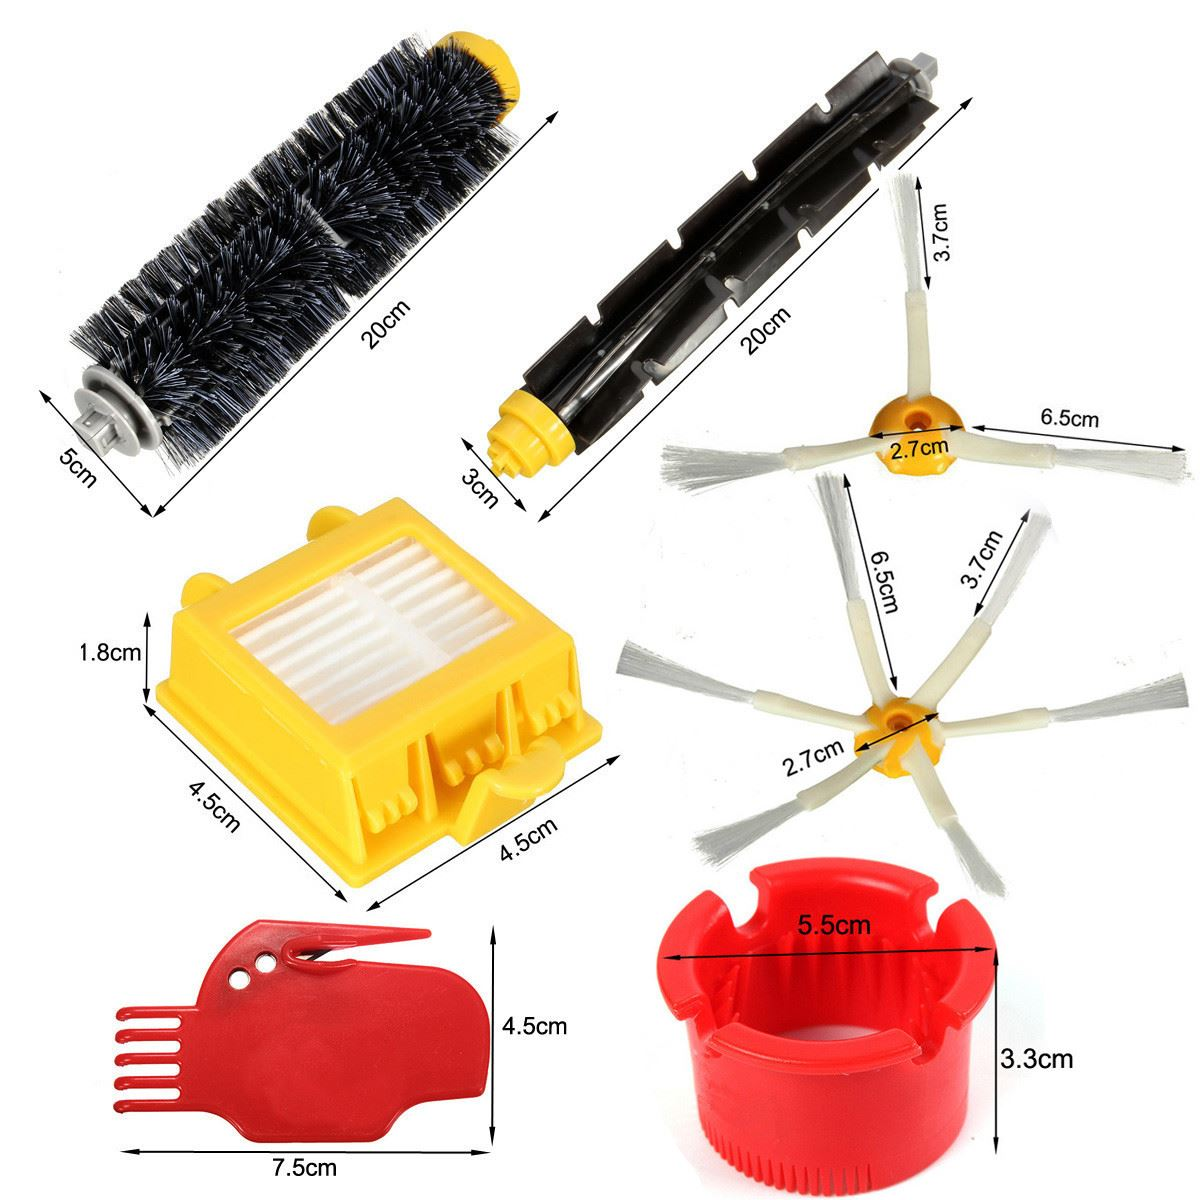 2018 New 16Pcs Hepa Filters And Flexible Beater Bristle Brush Kit 2 Side Brush For i Robot R oomba 700 Series Cleaning Tools 14pcs free post new side brush filter 3 armed kit for irobot roomba vacuum 500 series clean tool flexible bristle beater brush